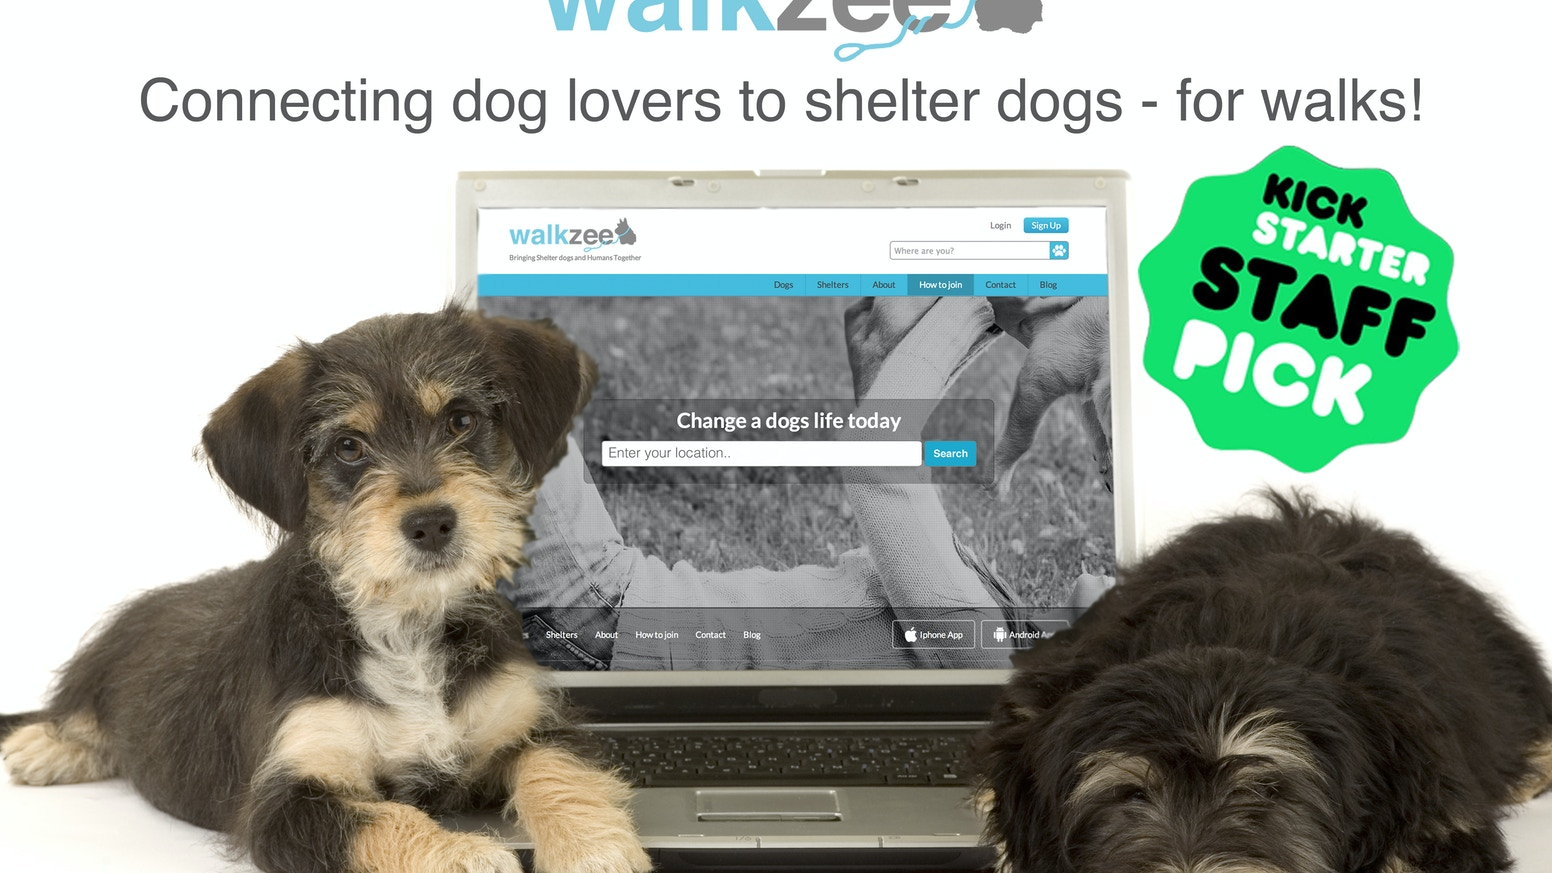 walkzee is the 1st free online platform connecting shelter dogs in need of a walk to dog lovers looking for a walking buddy!